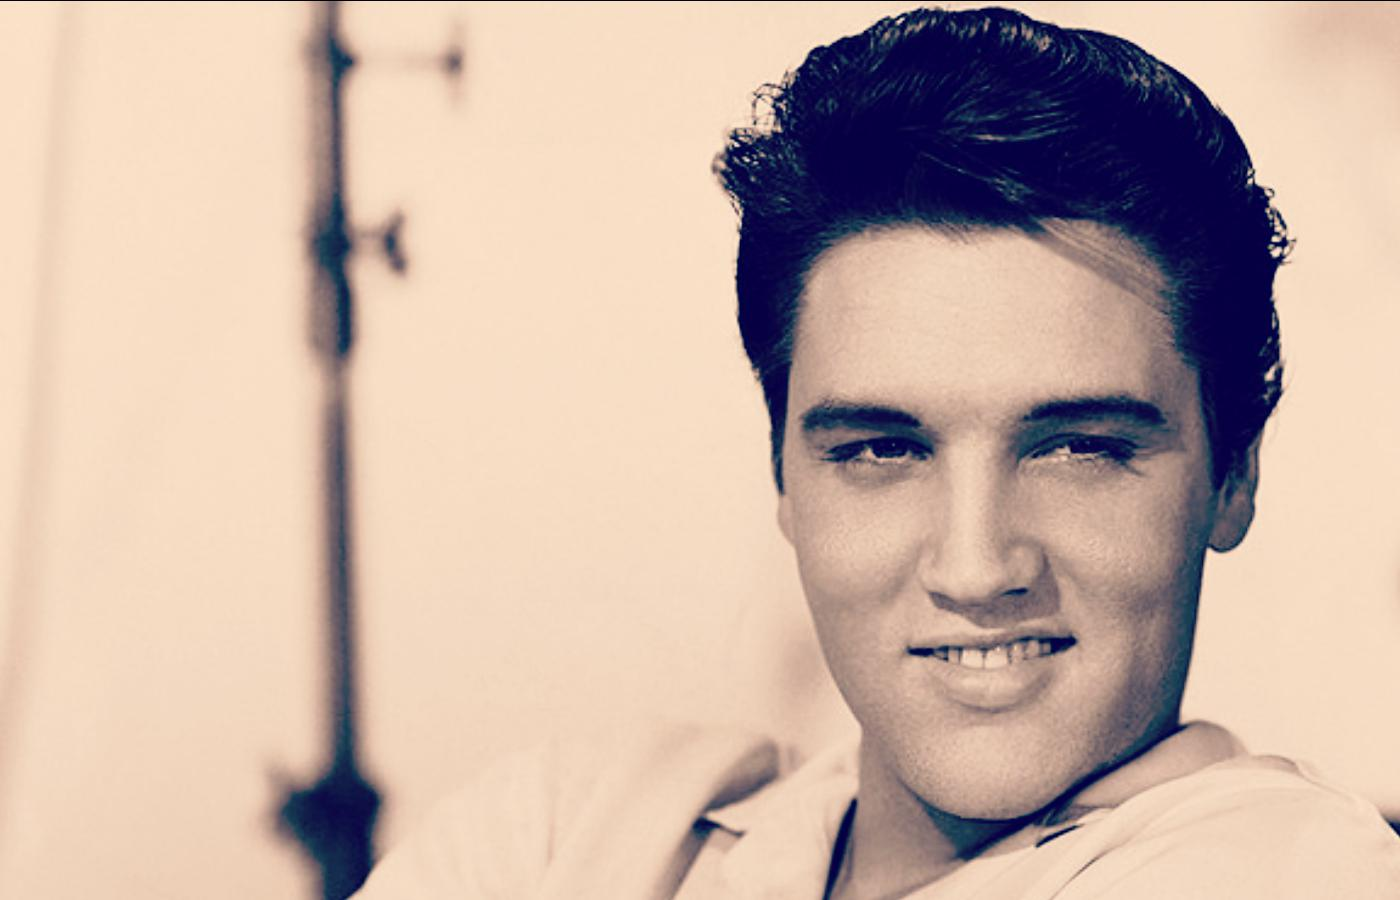 Elvis Presley via